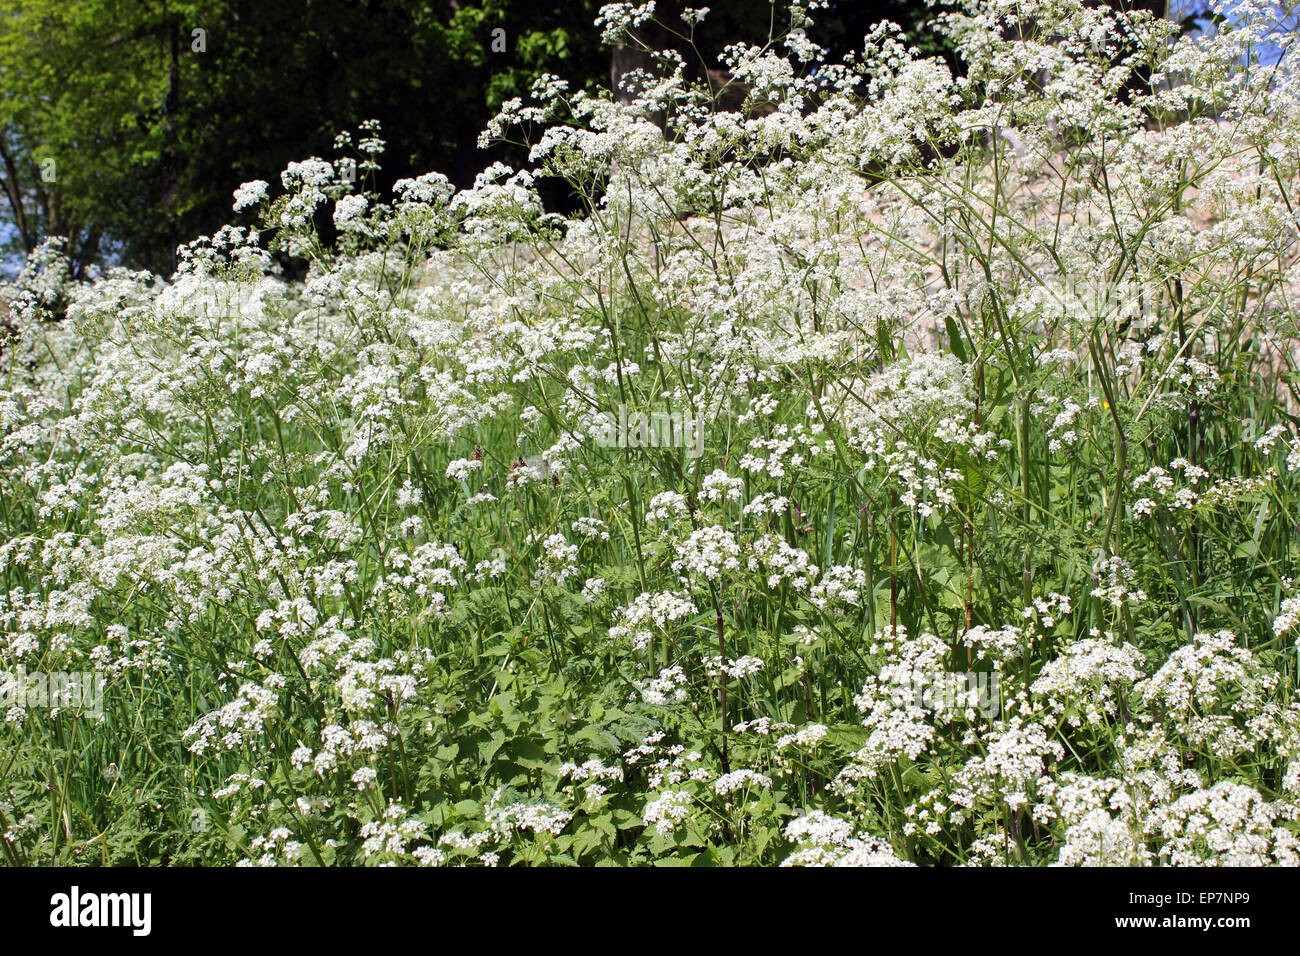 Anthriscus sylvestris - Cow Parsley Stock Photo